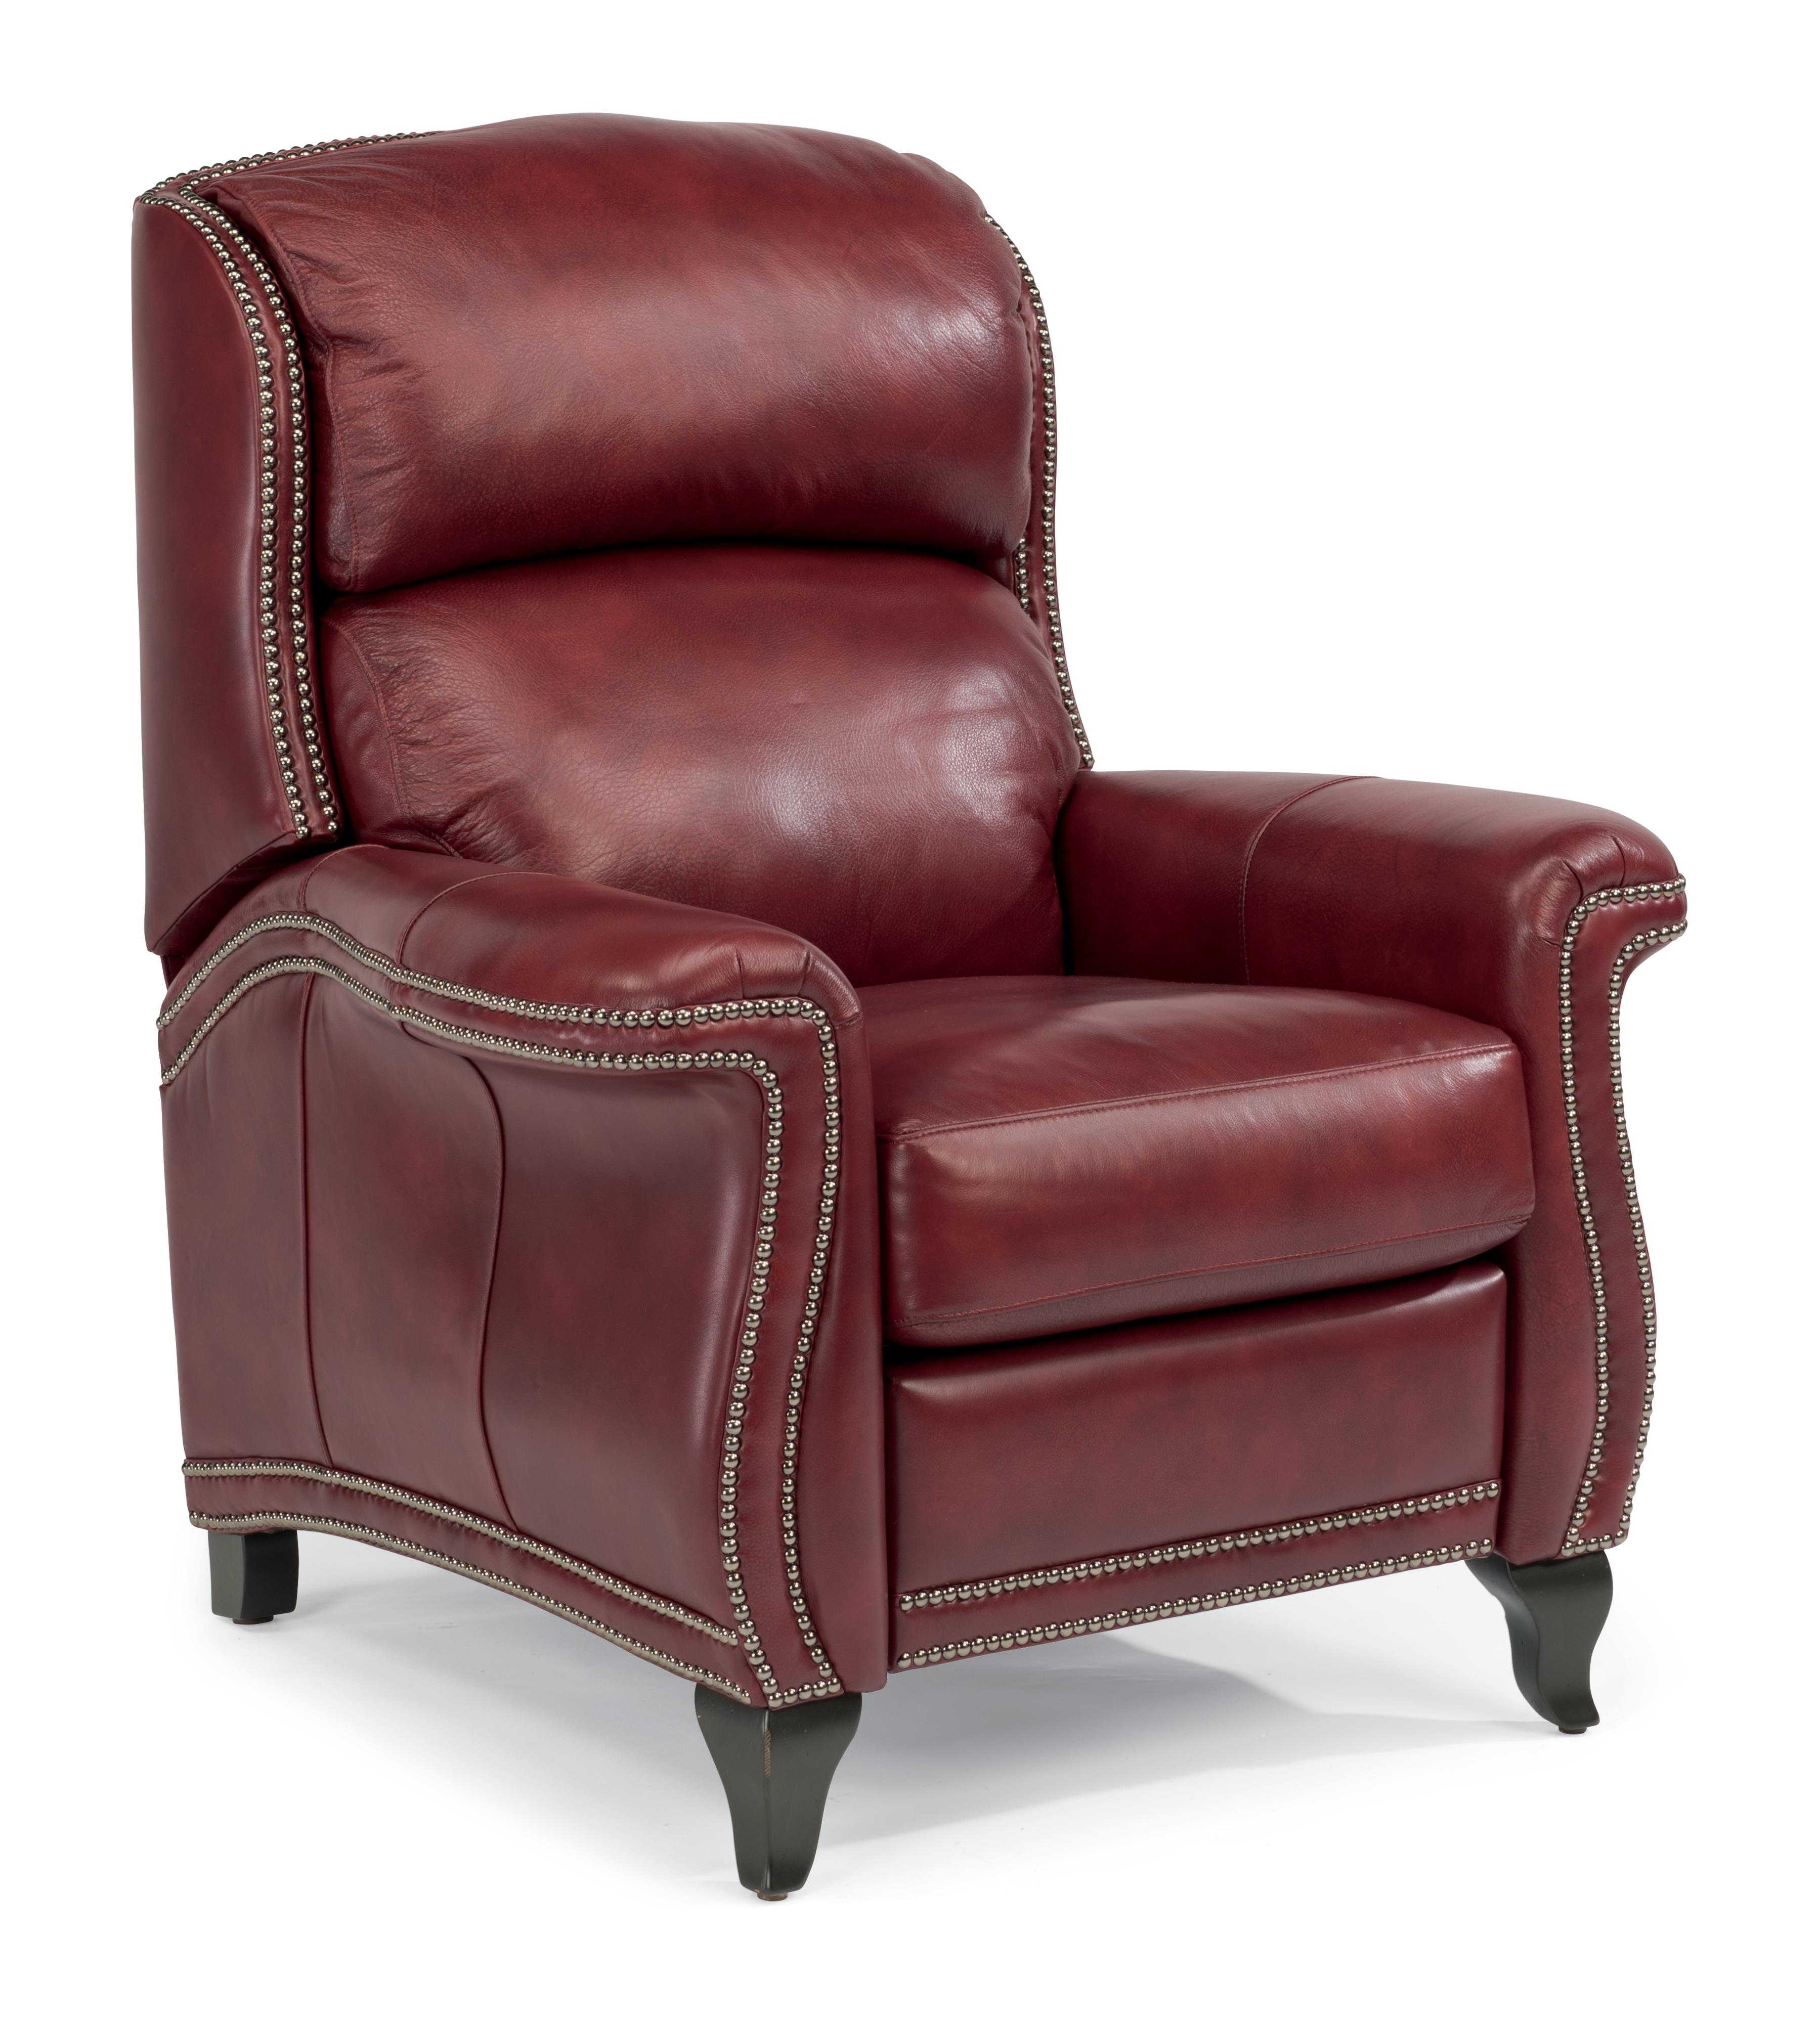 Flexsteel Latitudes-Sting Ray High Leg Recliner - Item Number: 1256-50P-LSP-55